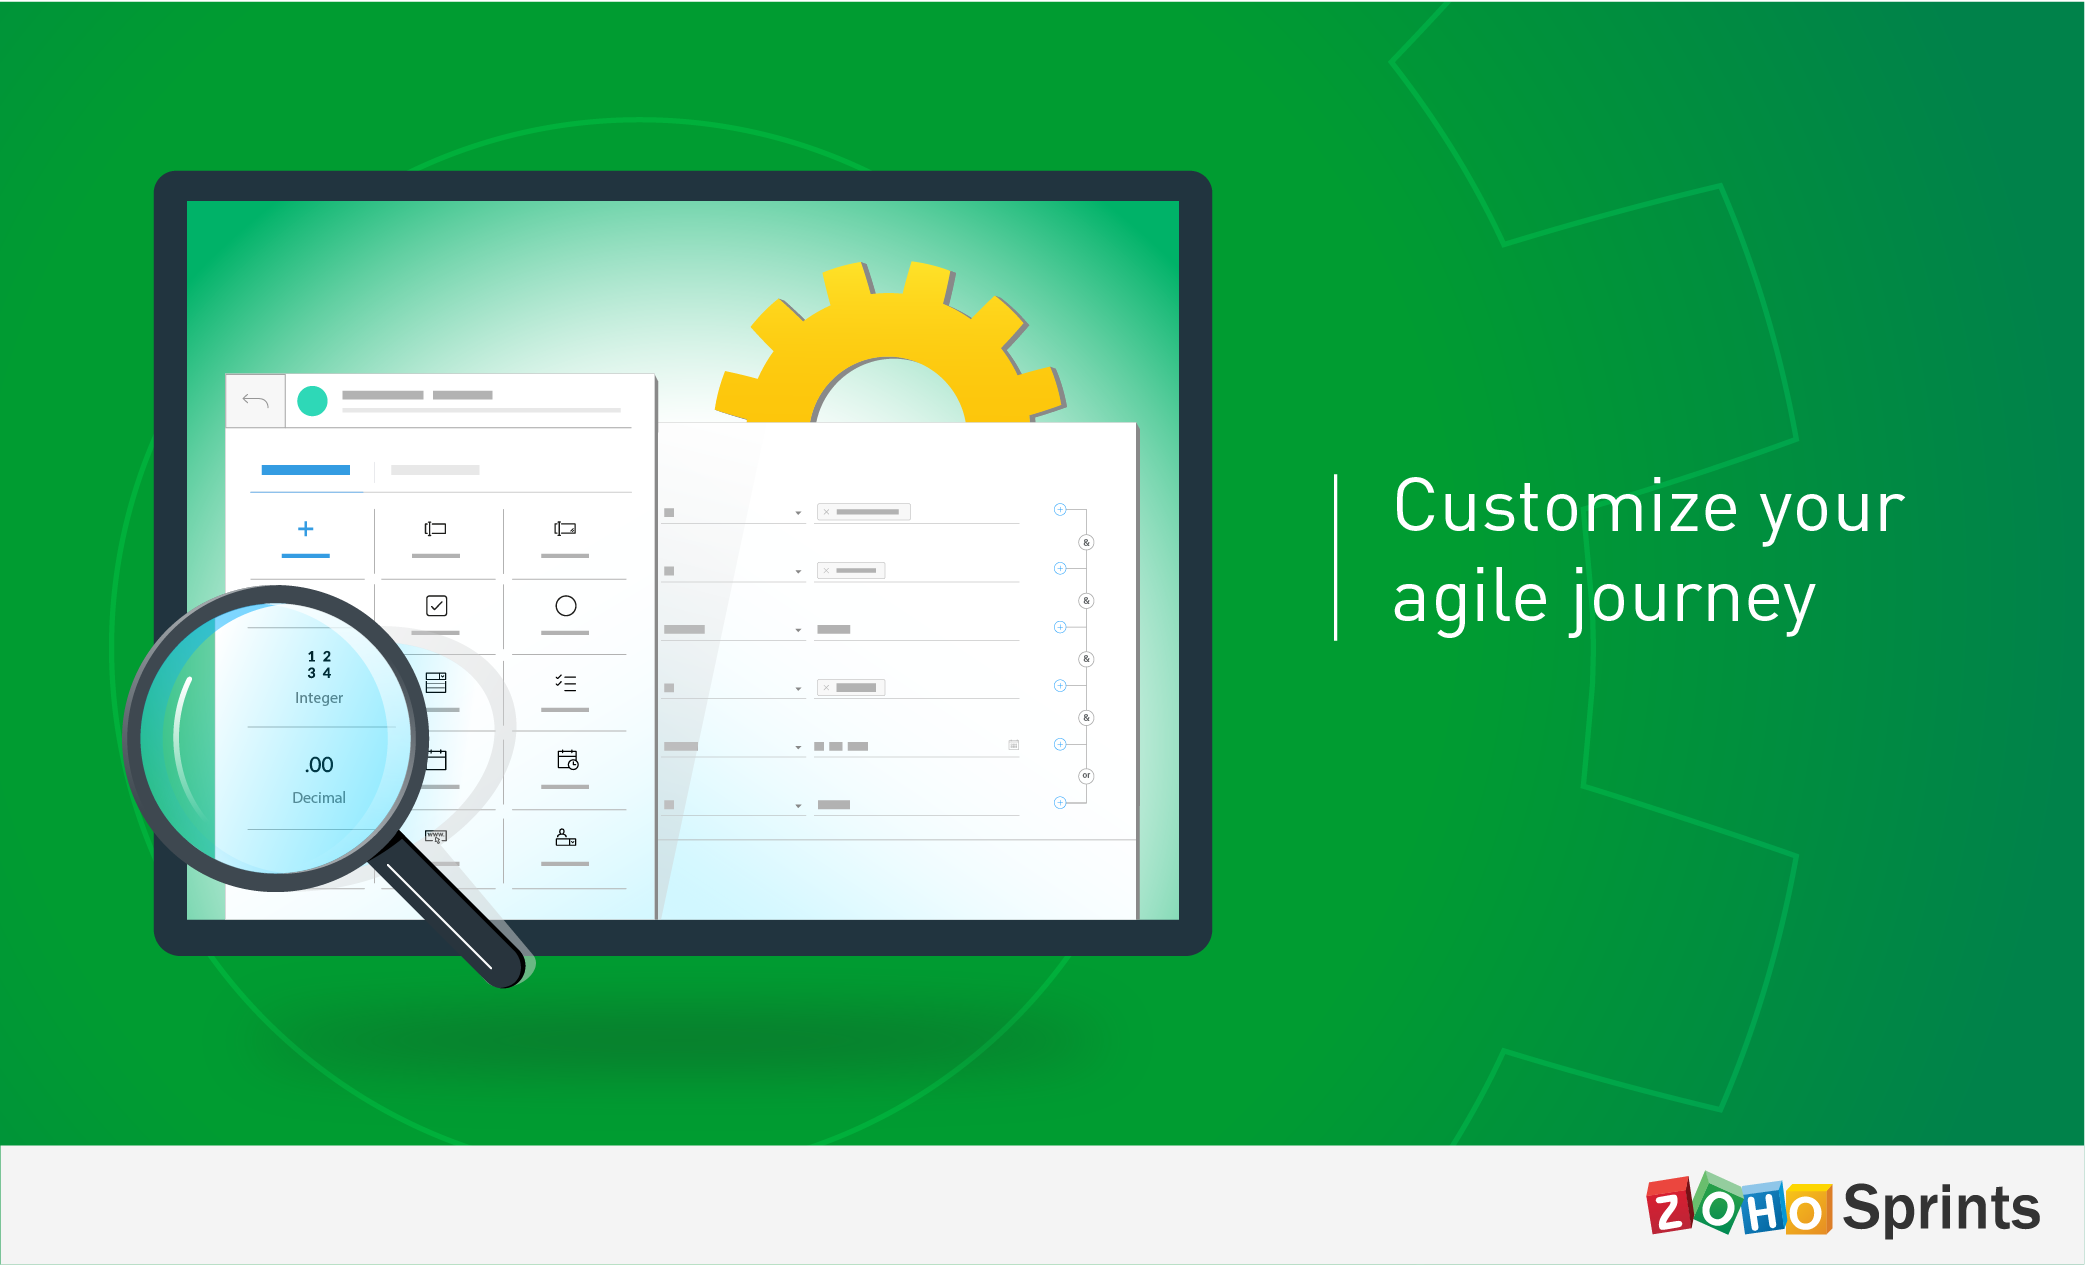 Customize your agile journey—announcing new features in Zoho Sprints